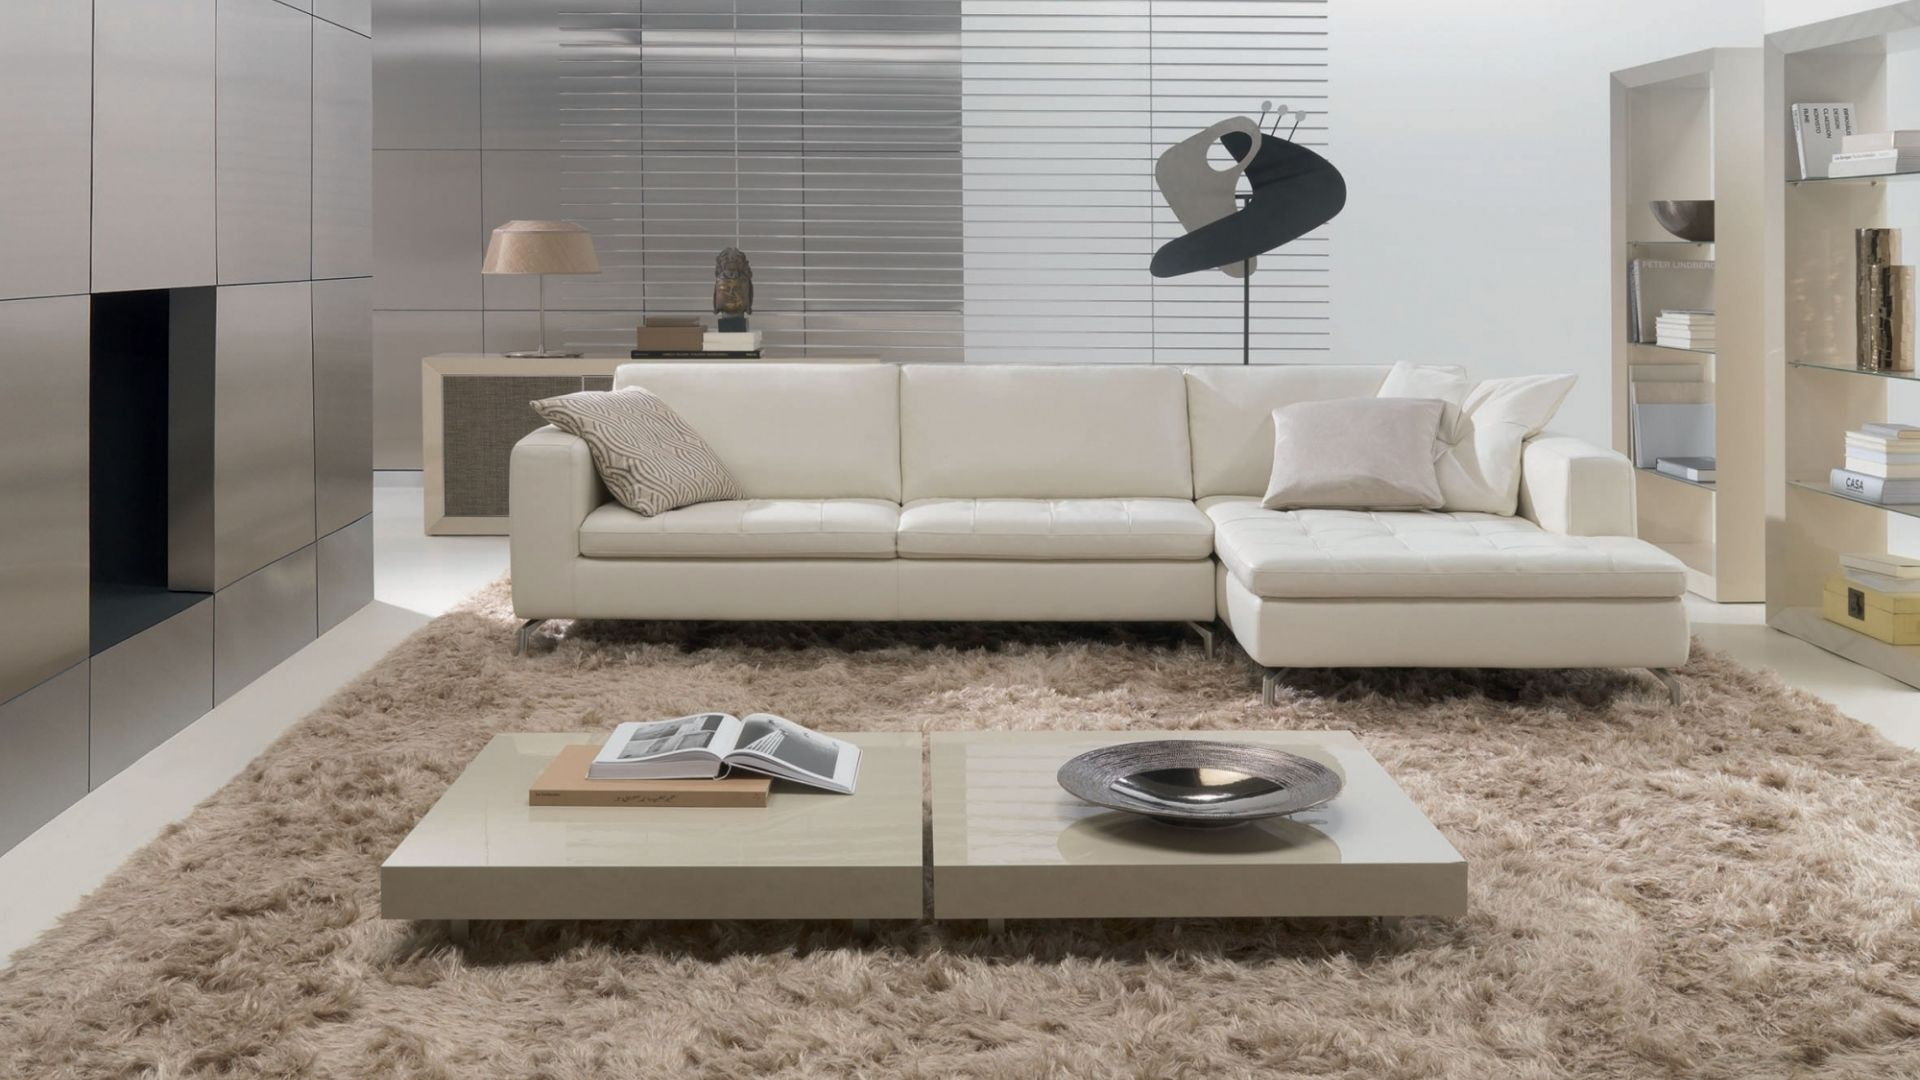 2458-savoy-sectional-071-2-1920x1080